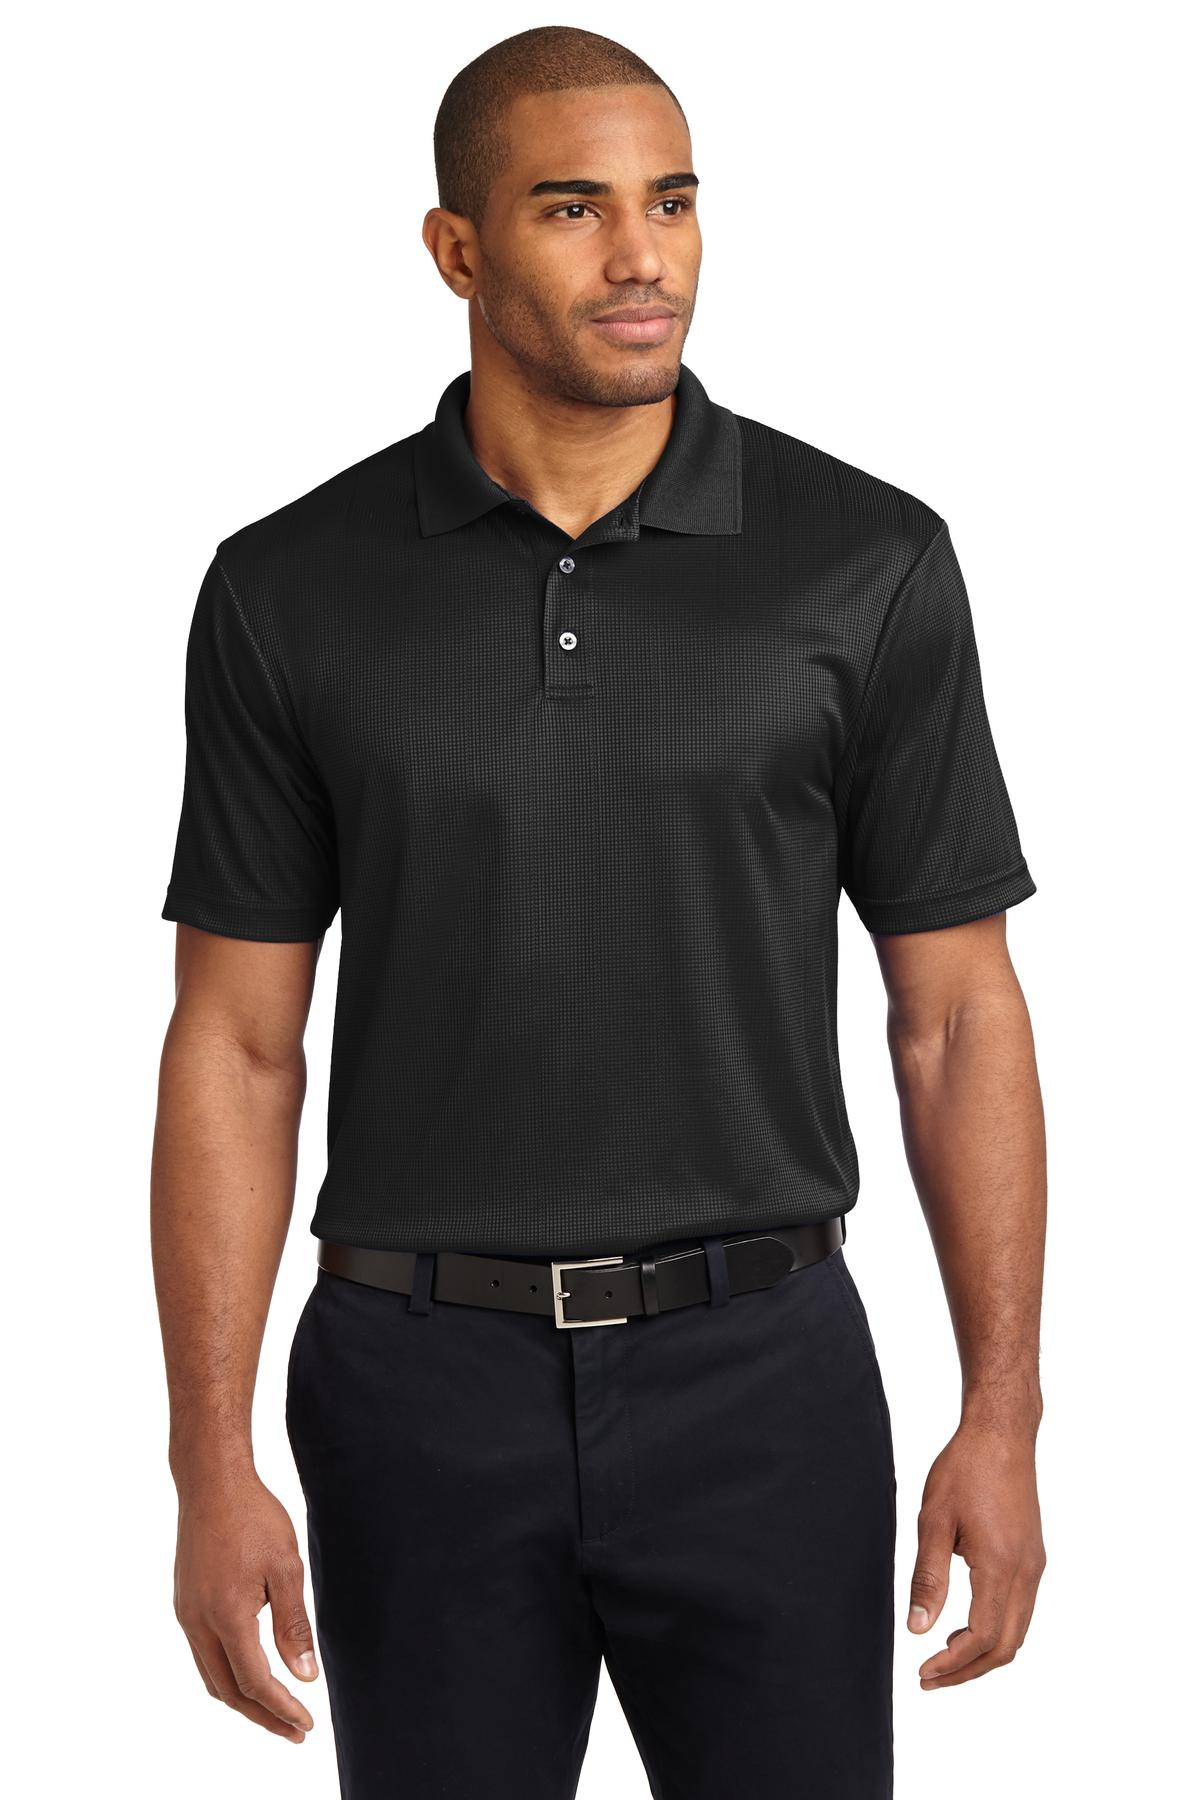 Port Authority® Performance Fine Jacquard Polo.-Port Authority